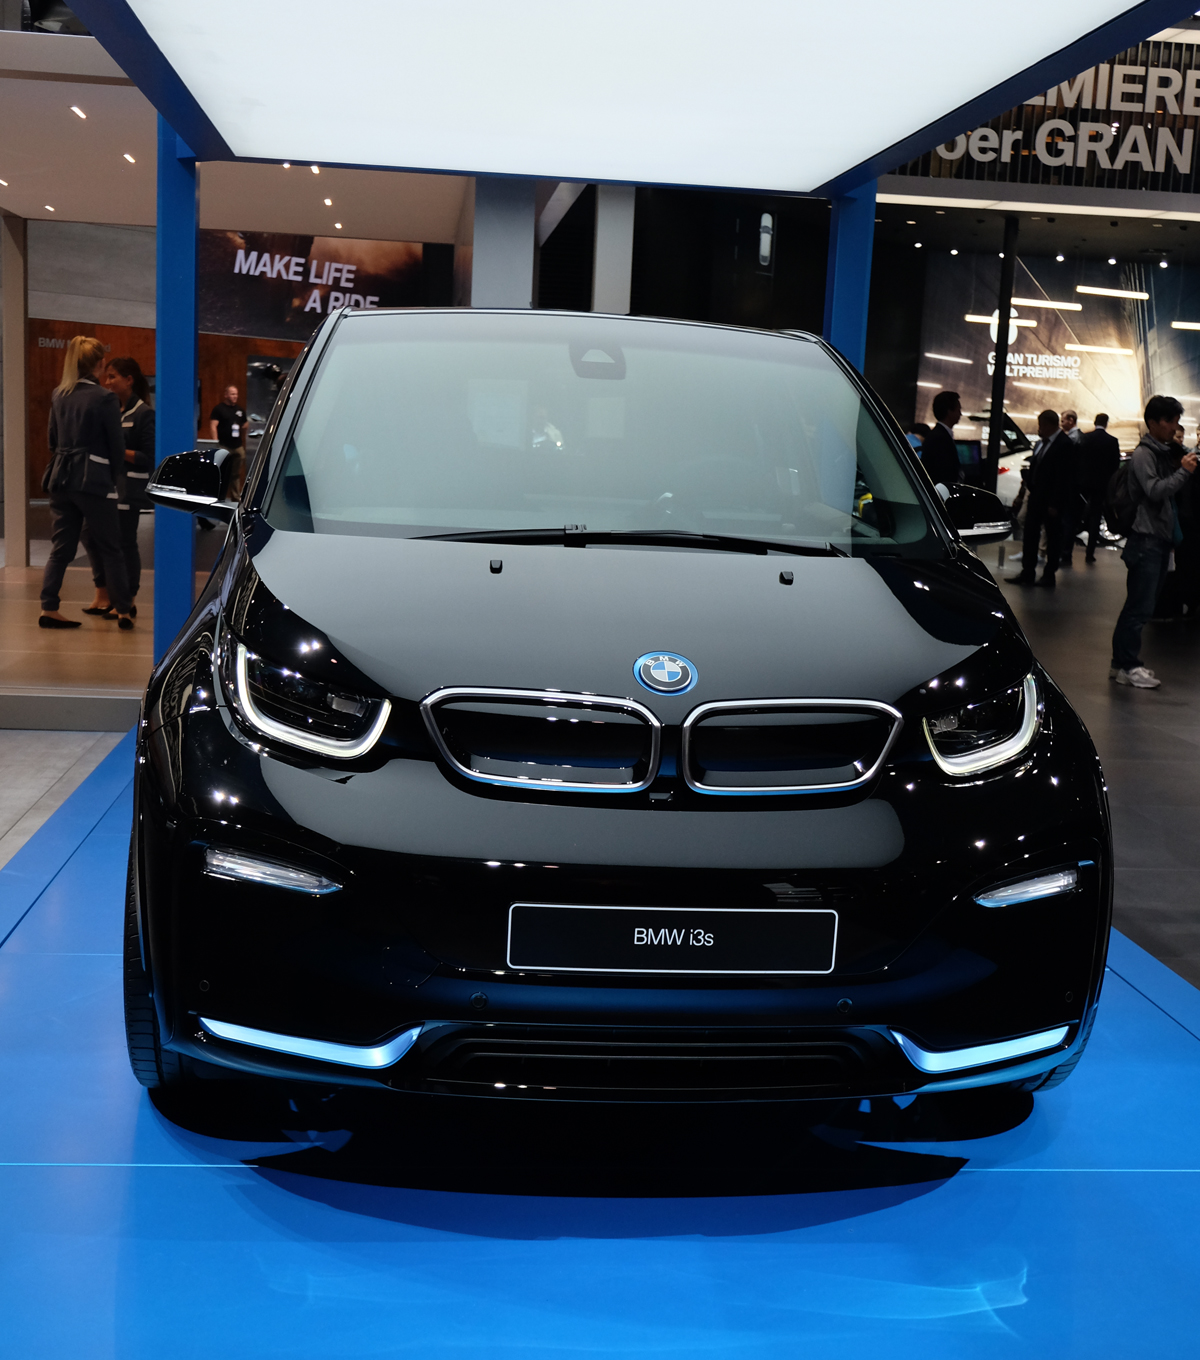 BMW i3 - Copyright green car magazine